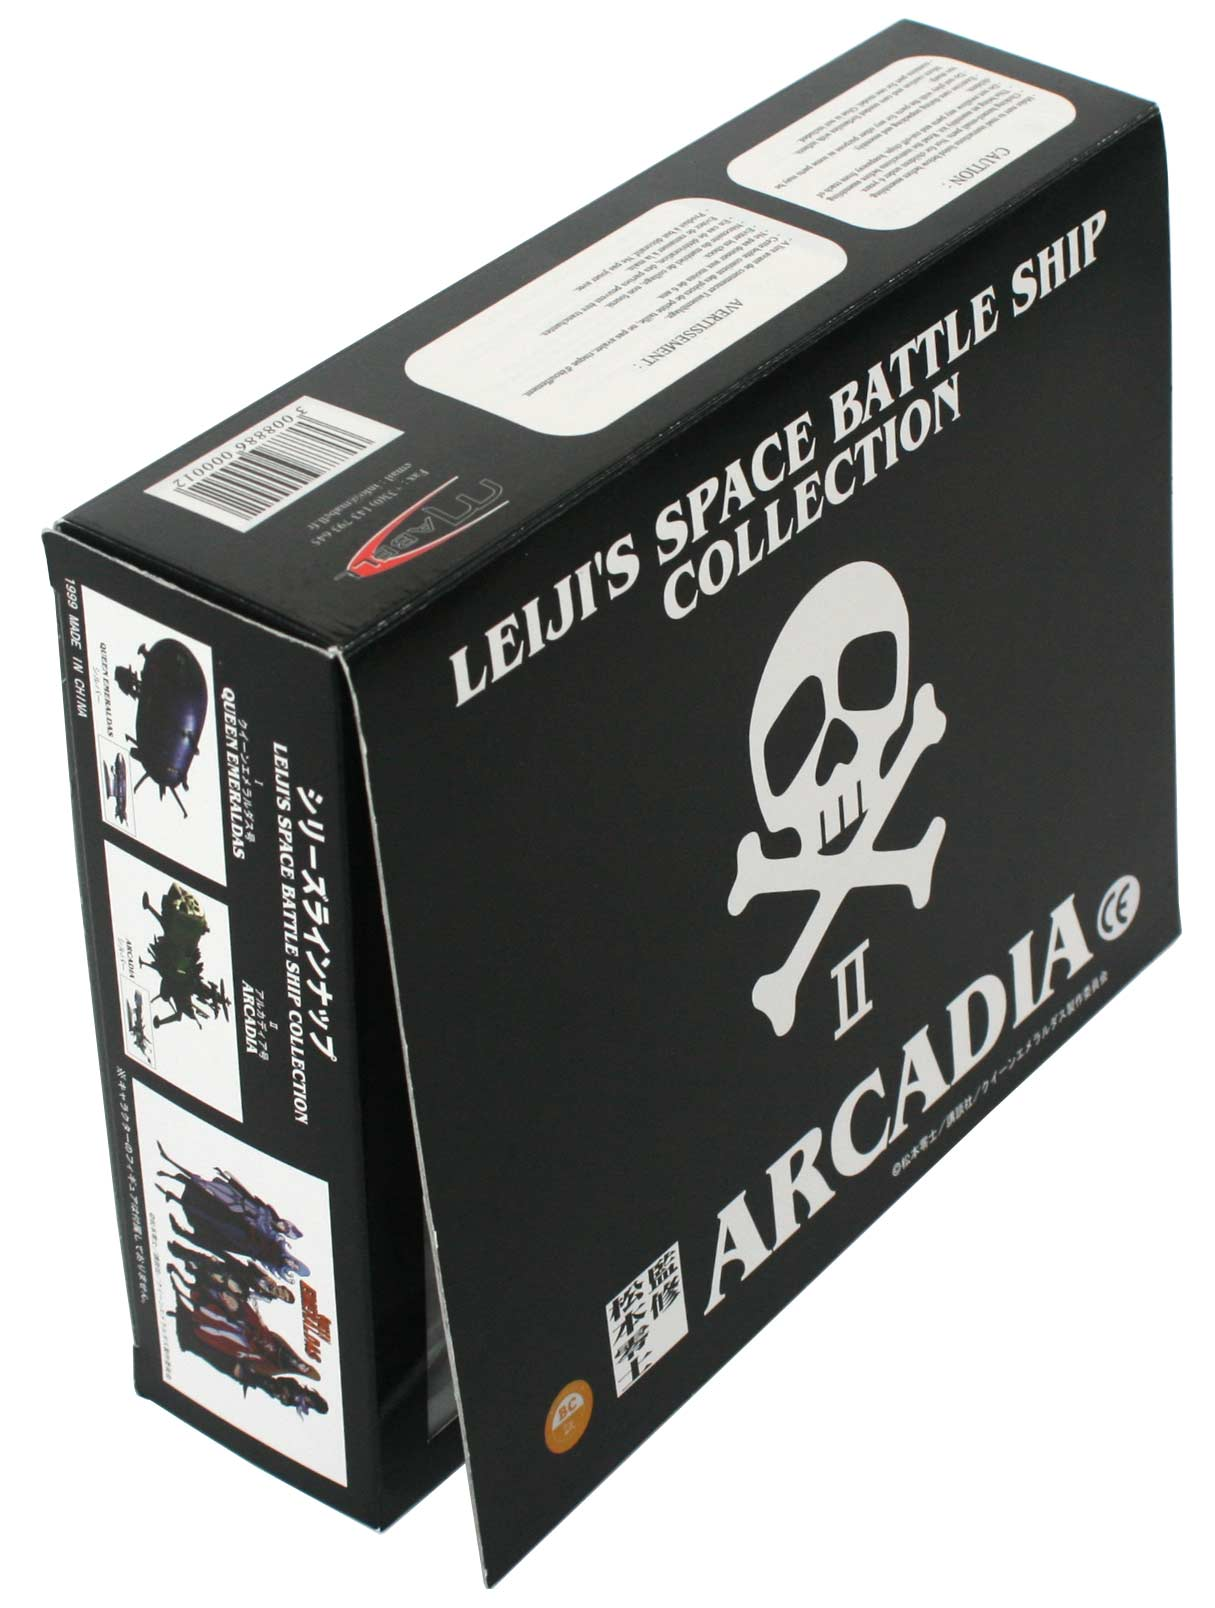 Packaging de l'Arcadia de Mabell de la collection Leiji's Space ship